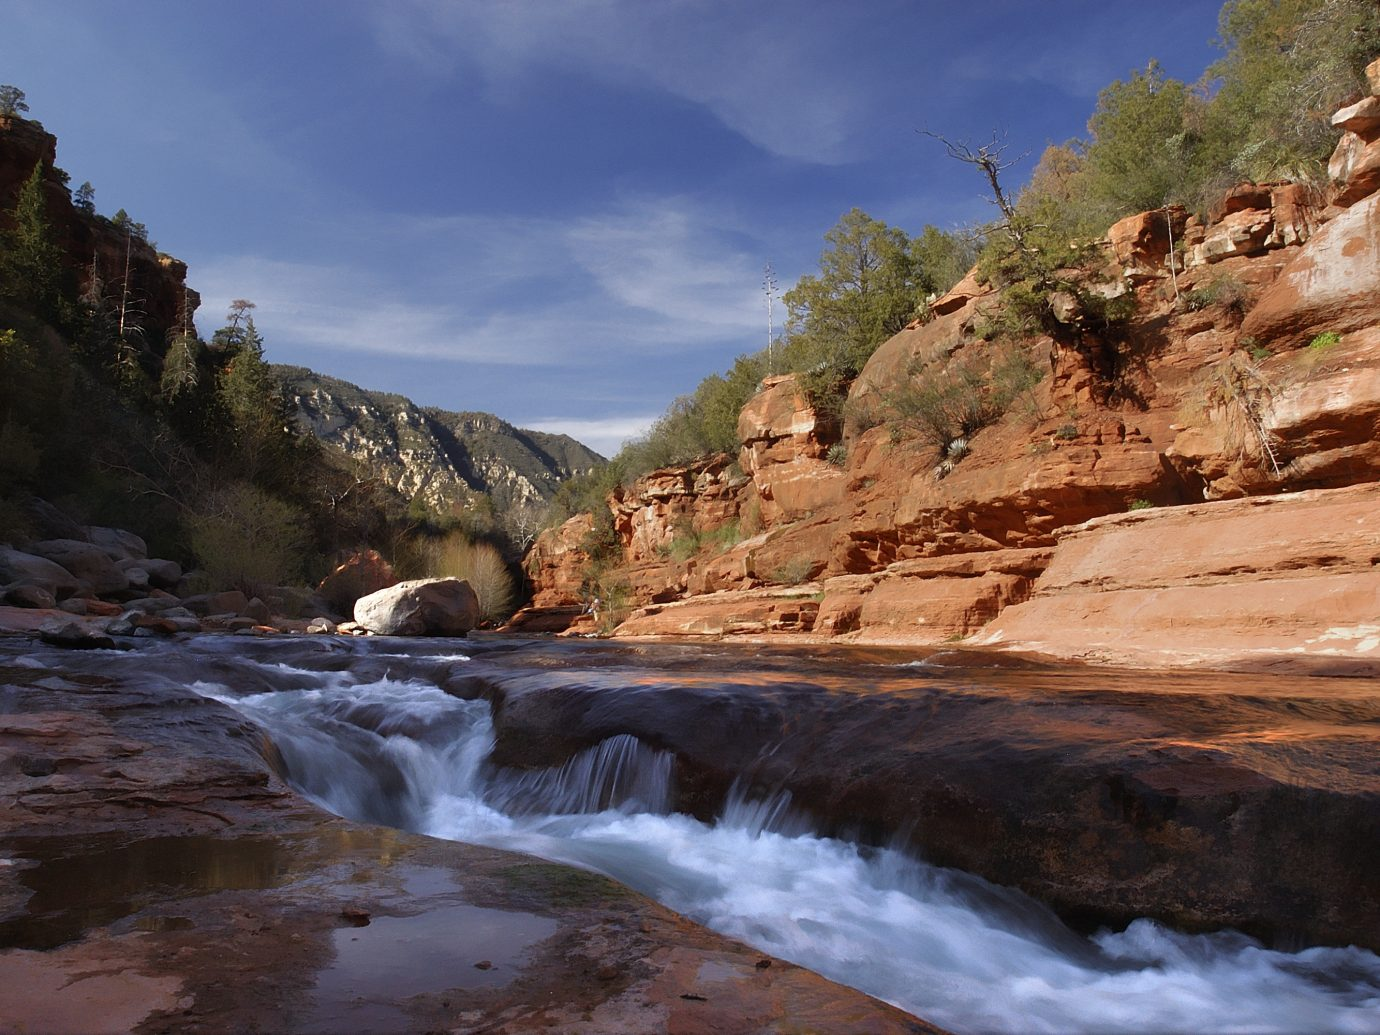 Trip Ideas outdoor Nature mountain rock valley mountainous landforms River landform geographical feature wilderness body of water water canyon rapid rocky landscape Waterfall wadi water feature cliff Coast Sea stream terrain geology national park hillside